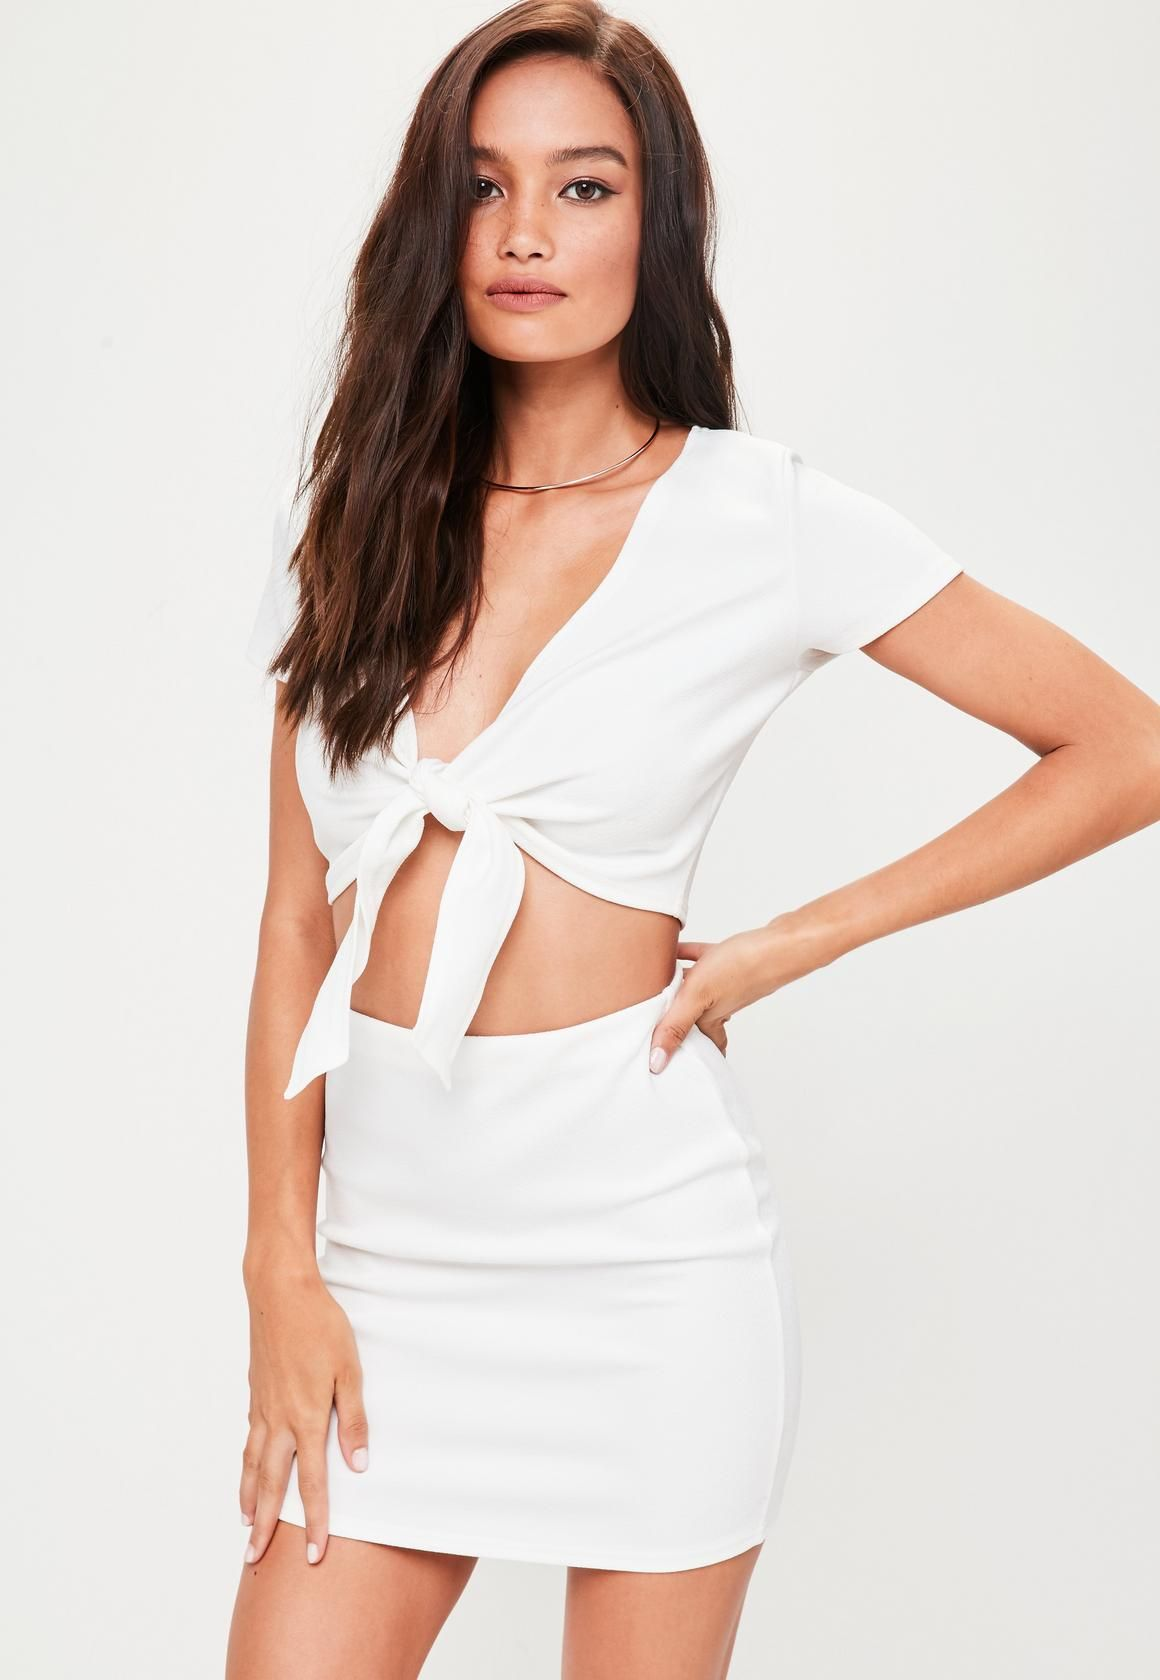 657d5405c32ada Missguided - Petite White Tie Front Crop Top | MustHaves 2 0 1 8 ...